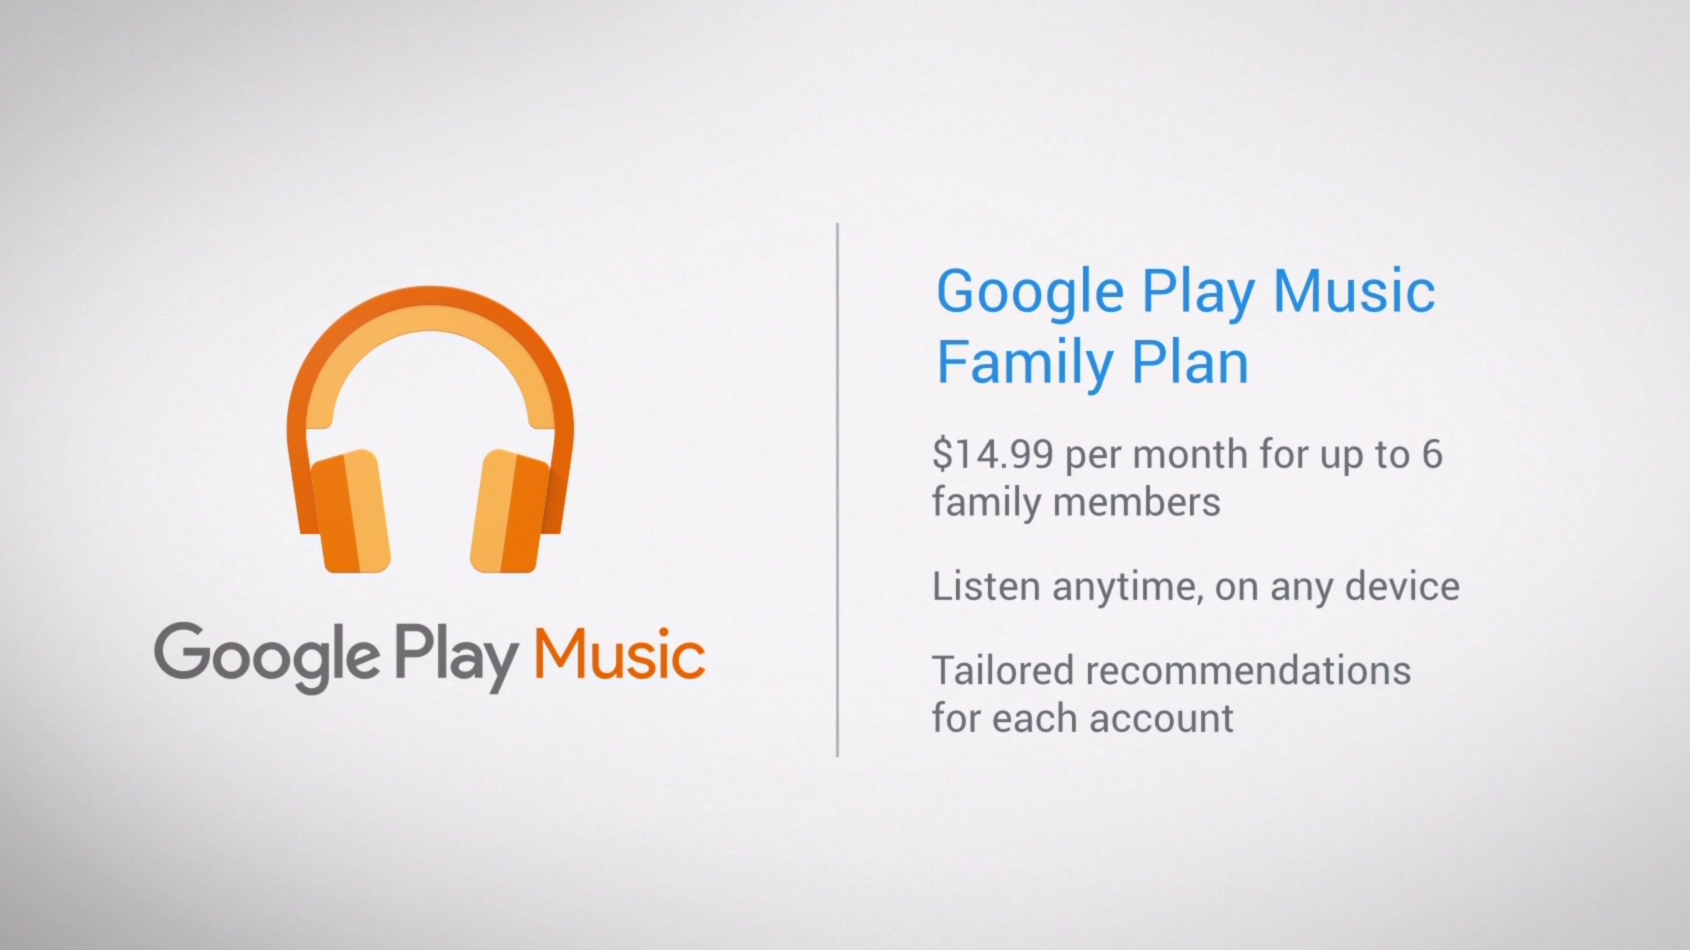 The Google Play Music family plan sweetens the pot with